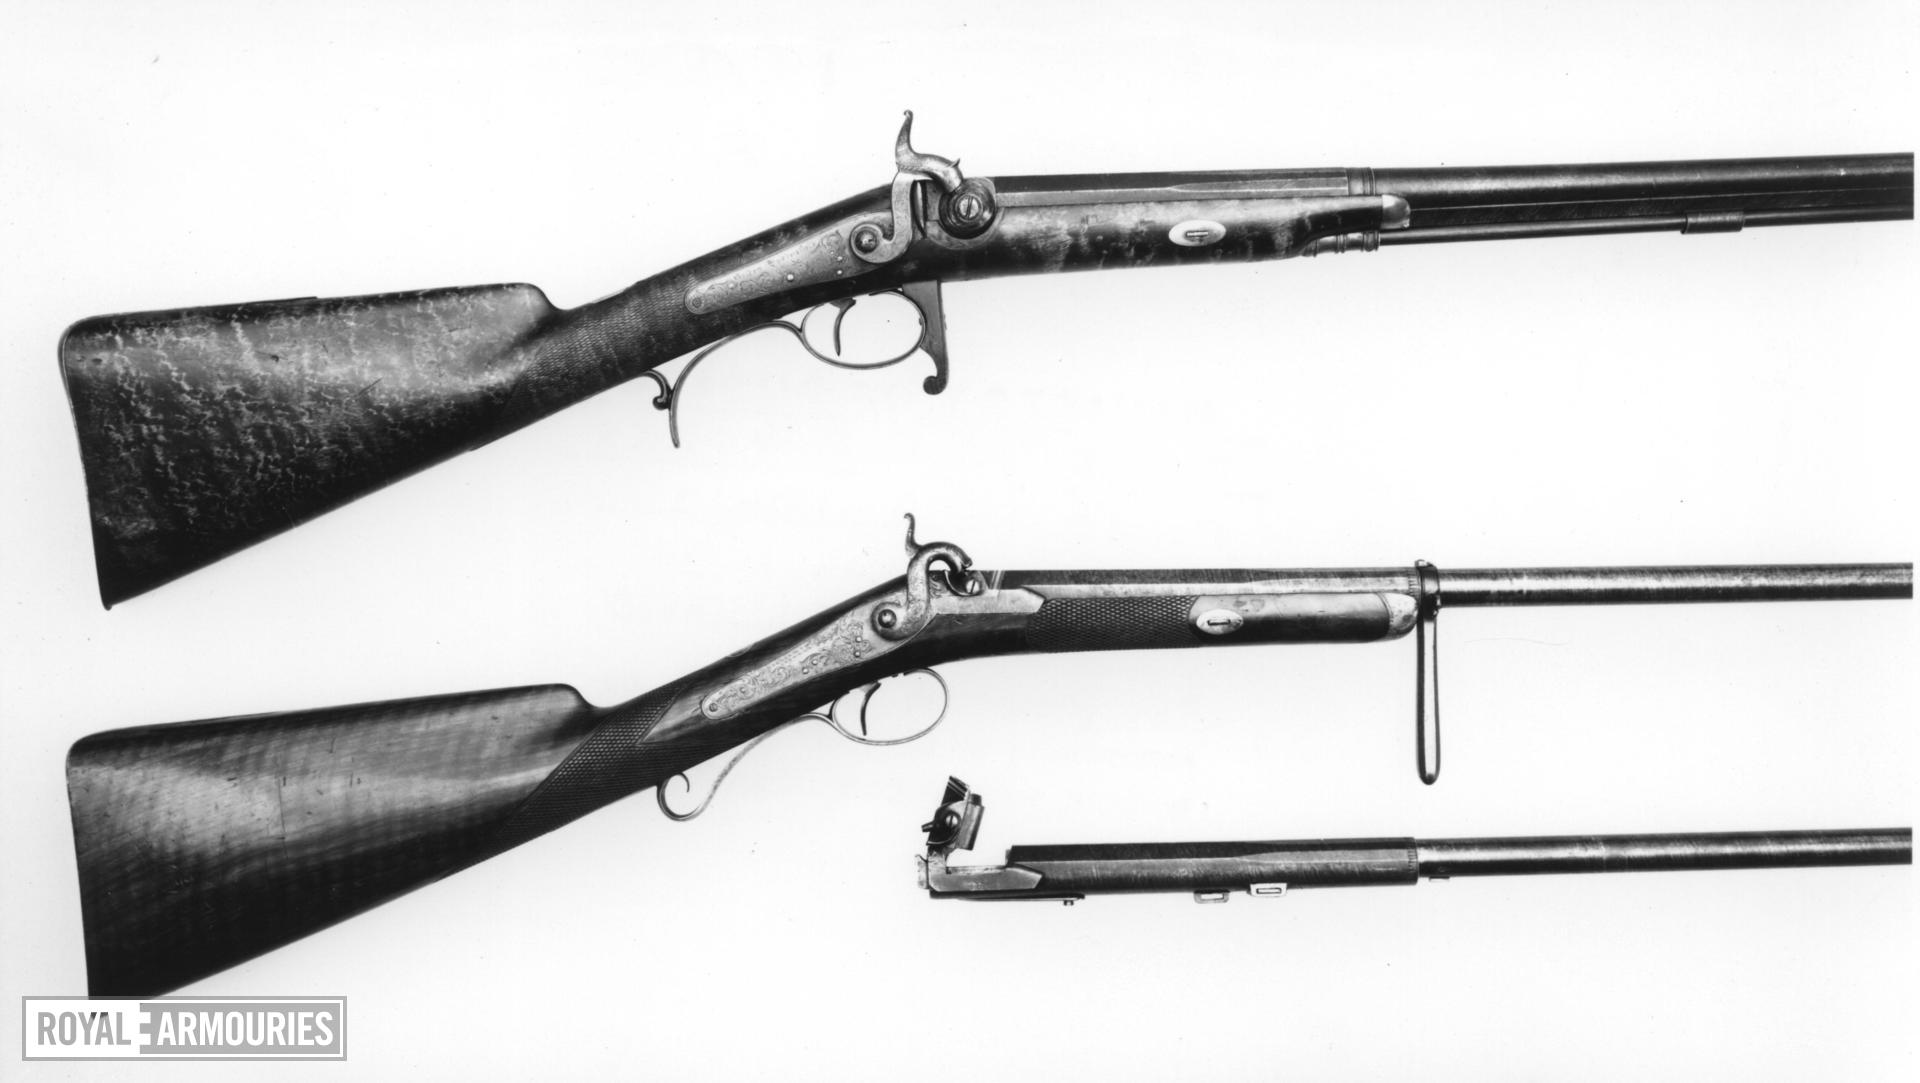 Percussion breech-loading rifle - By Williams and Powell